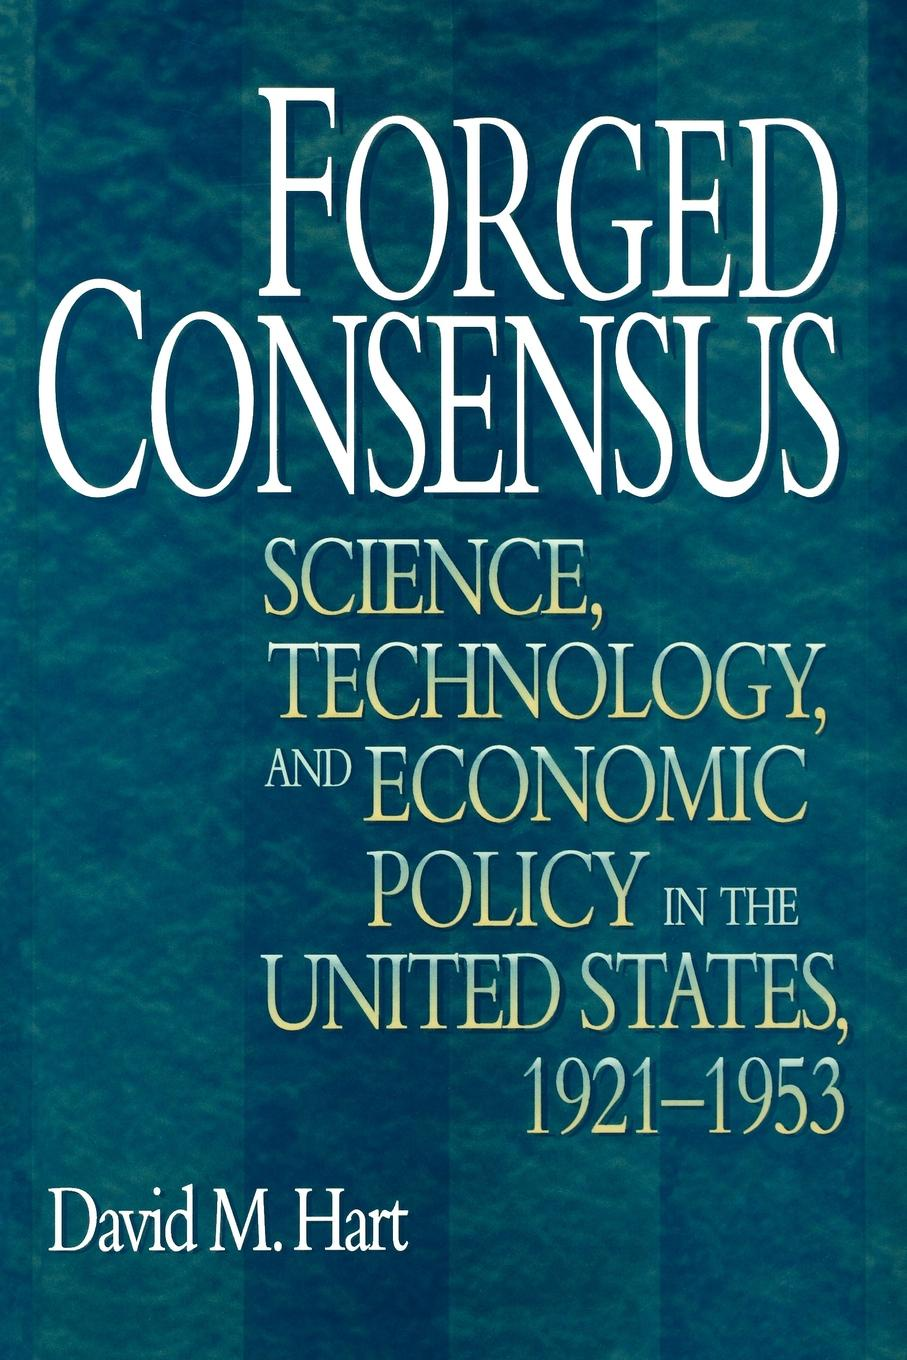 David M. Hart Forged Consensus. Science, Technology, and Economic Policy in the United States, 1921-1953 david m hart forged consensus science technology and economic policy in the united states 1921 1953